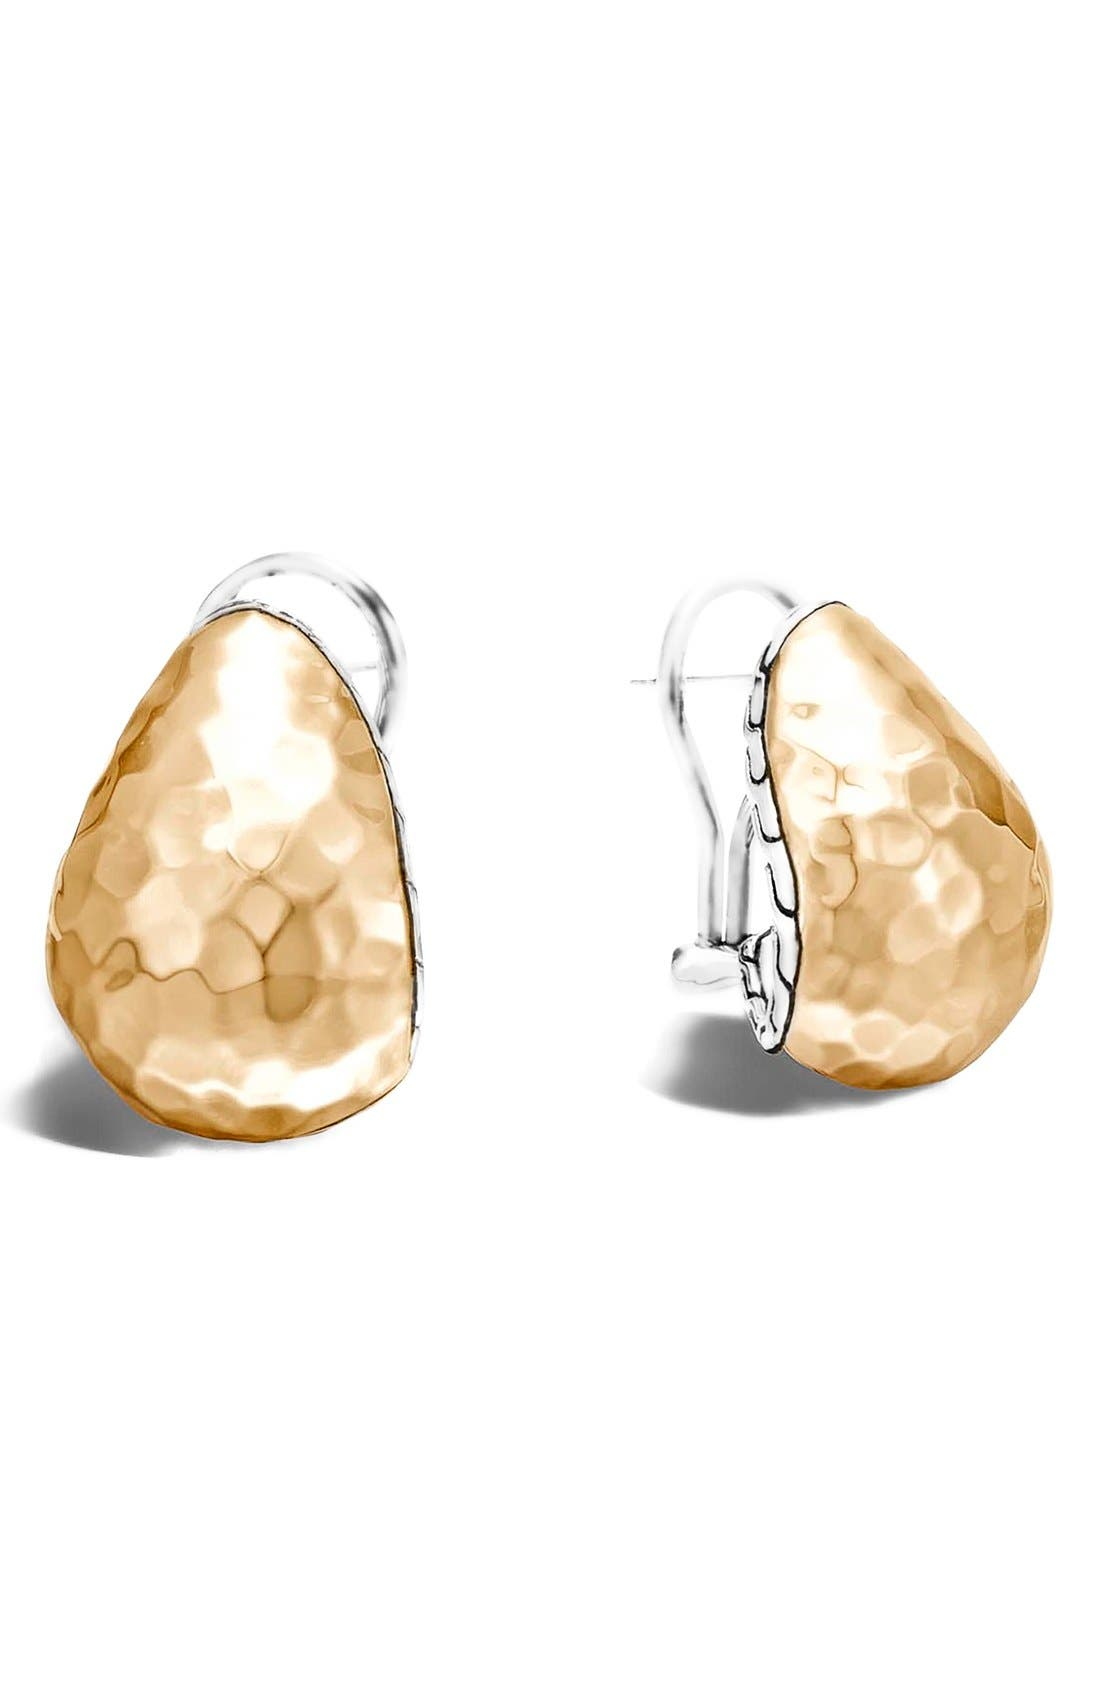 'Classic Chain - Buddha Belly' Stud Earrings,                             Main thumbnail 1, color,                             Silver/ Gold